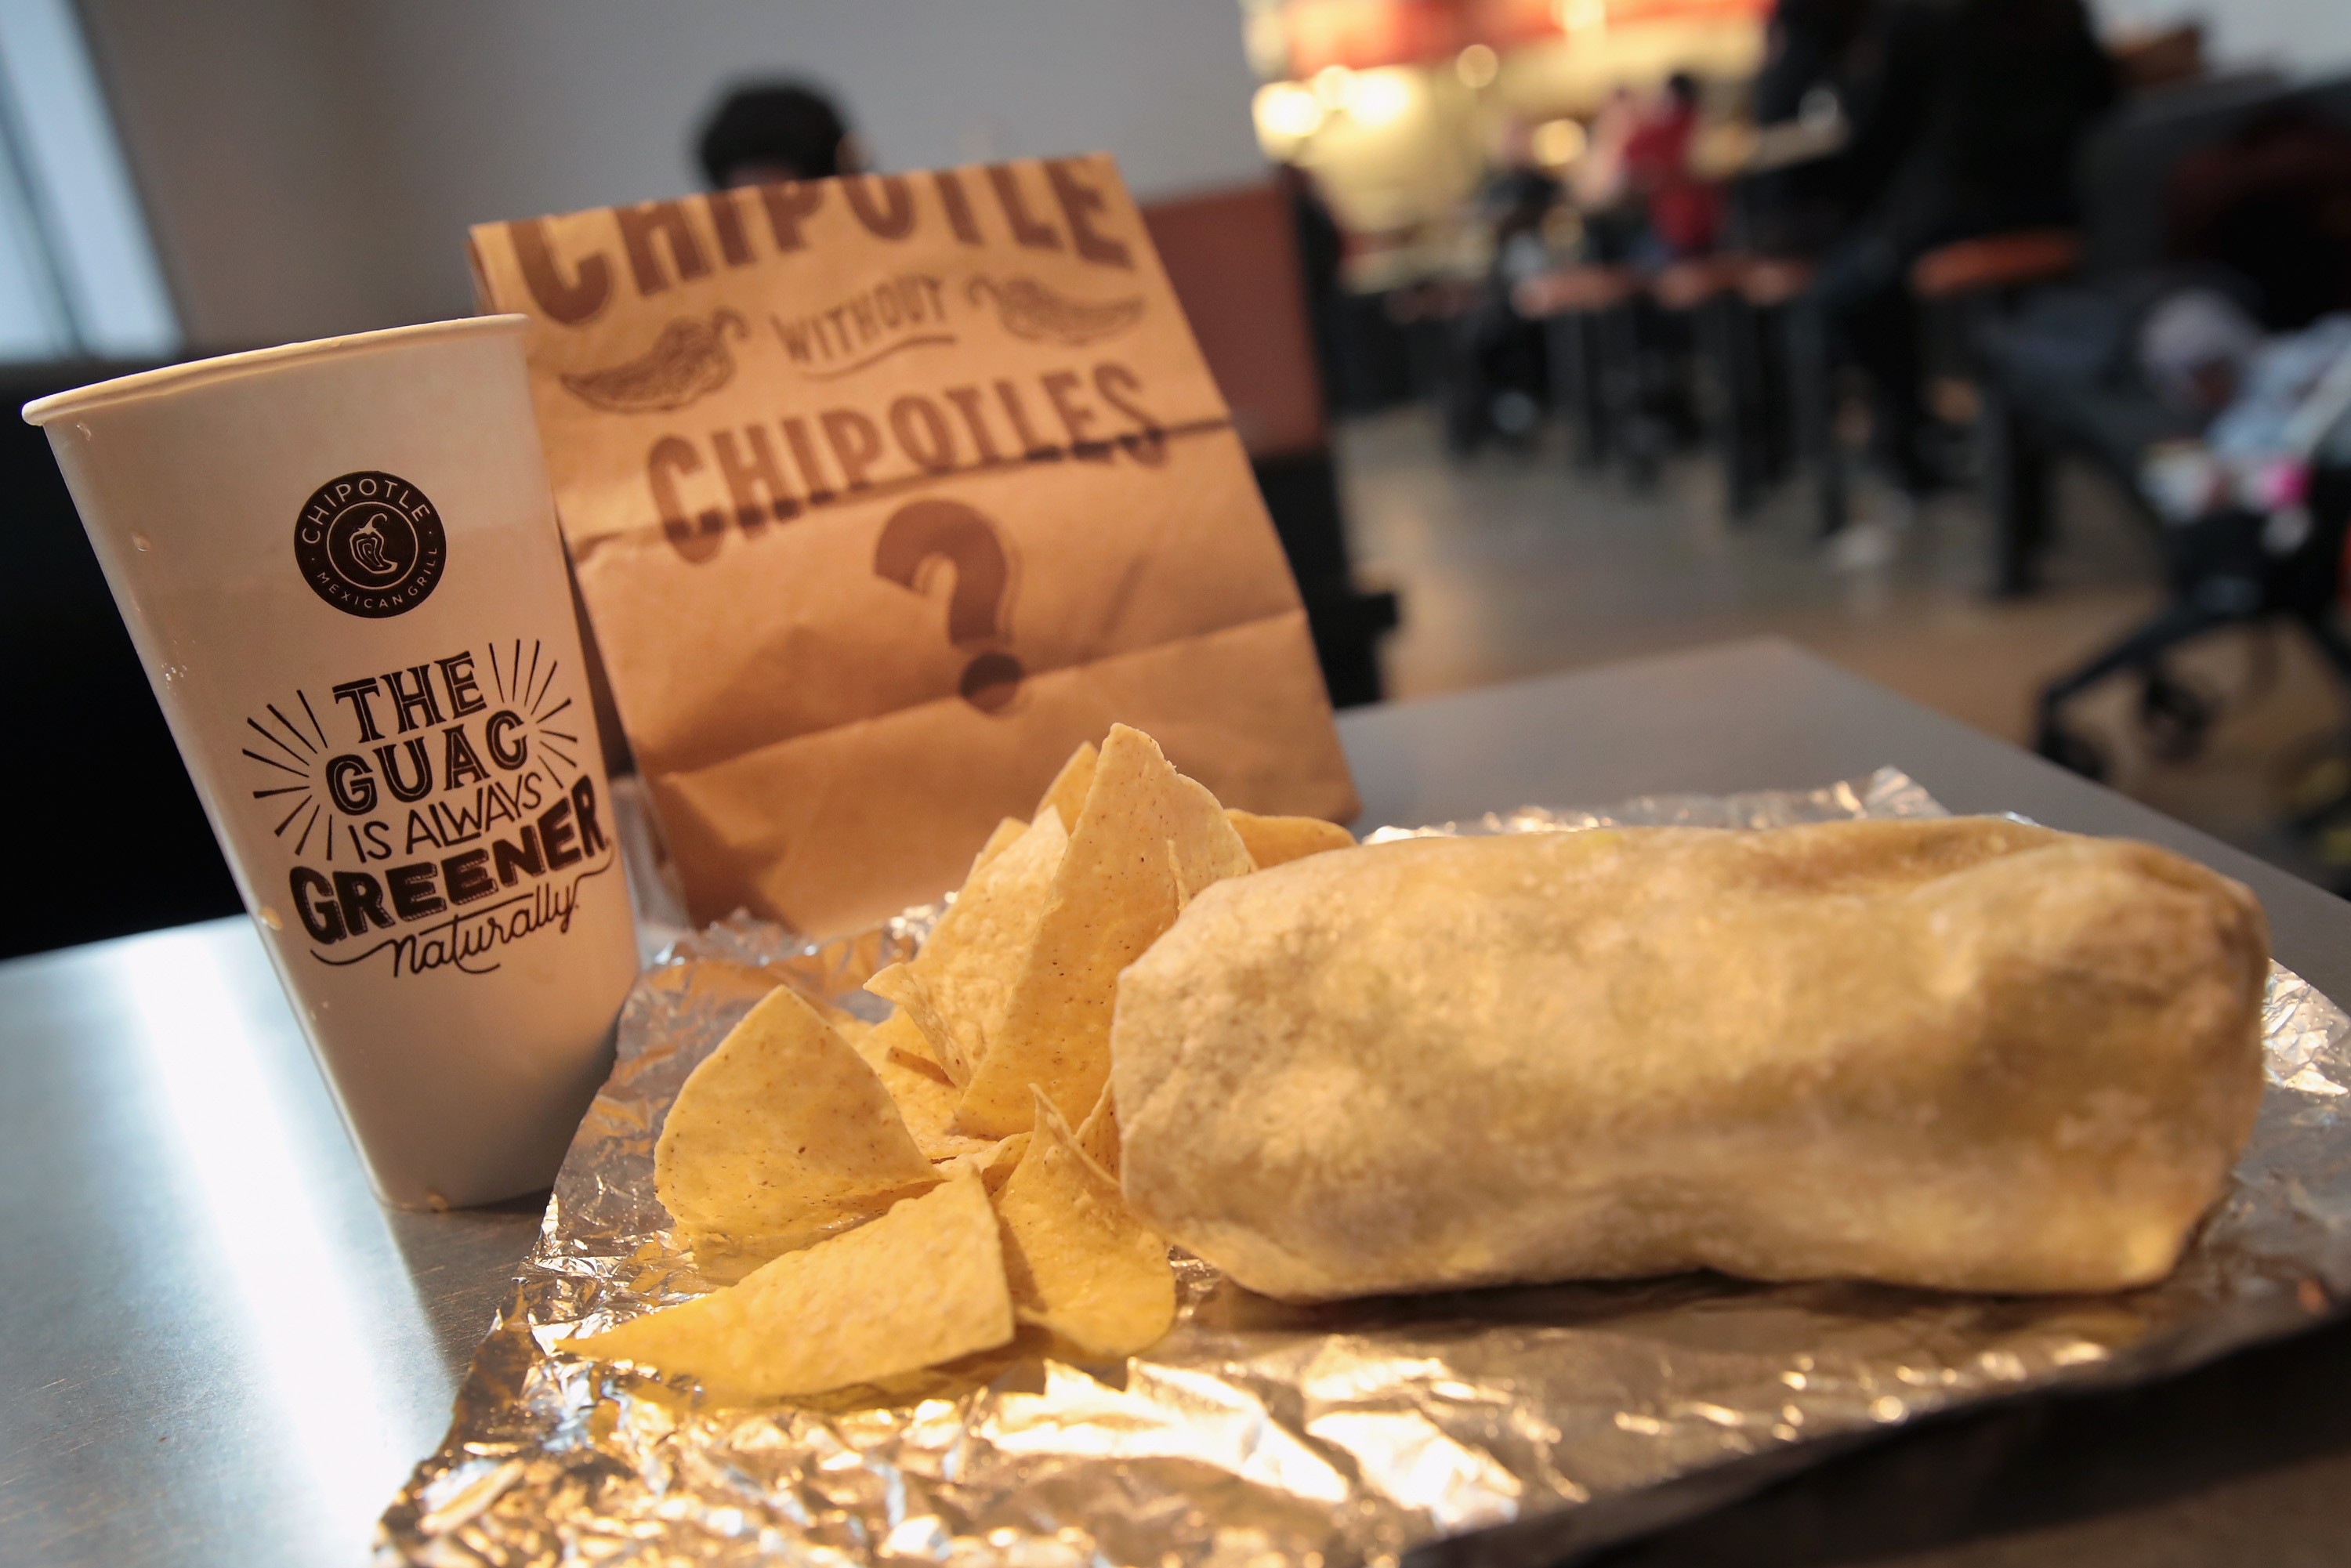 A photo of an unwrapped Chipotle burrito sitting on foil with chips beside a Chipotle drink cup and paper bag